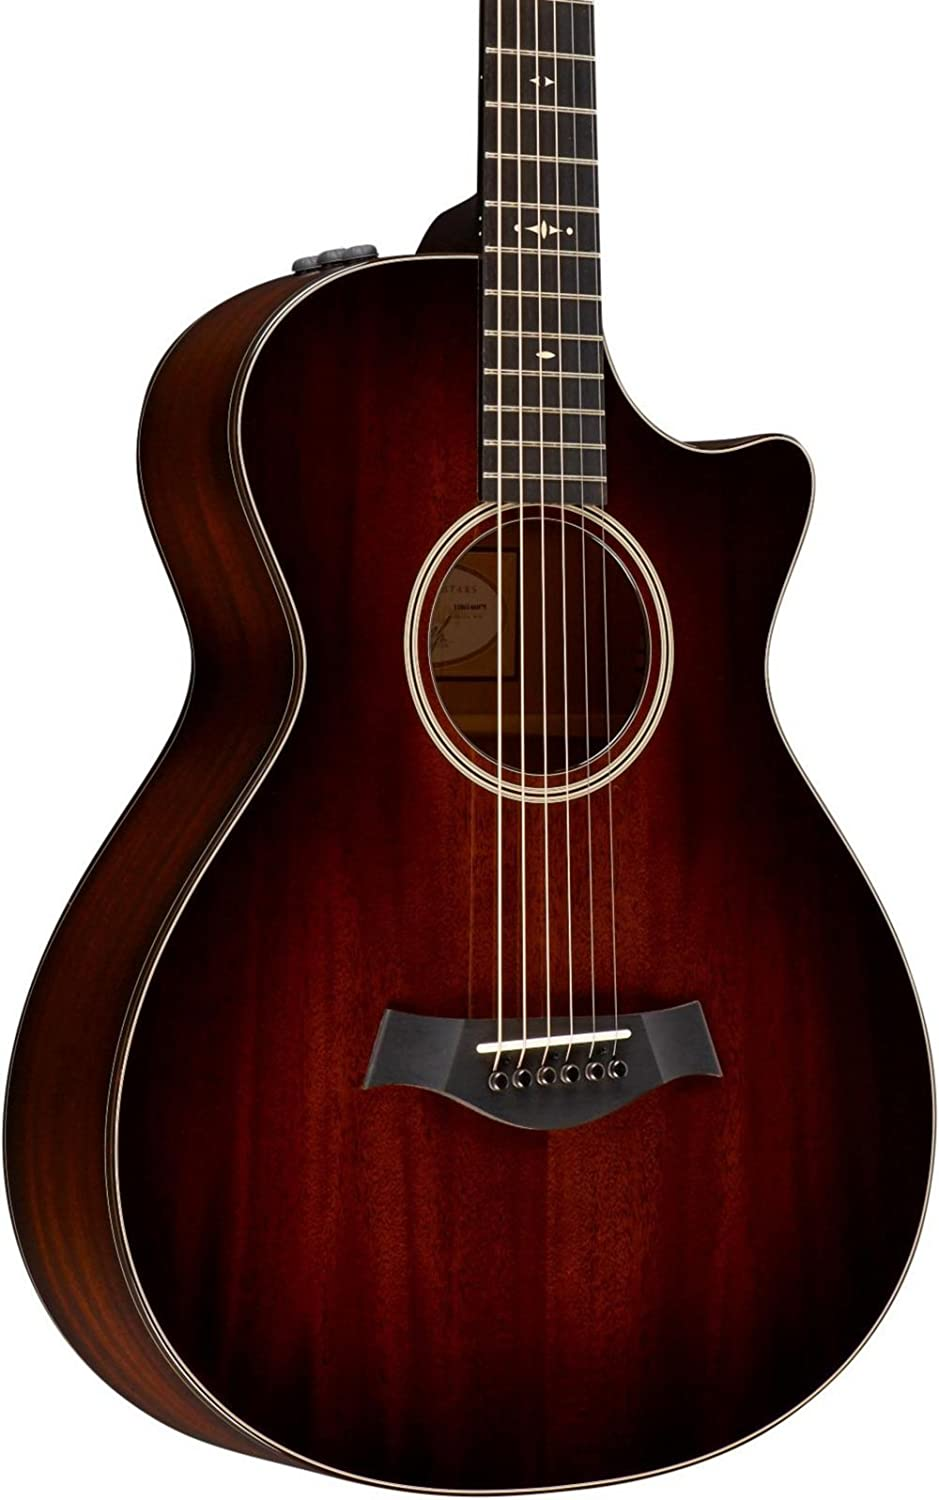 Taylor 522 12-Fret Mahogany Acoustic Guitar, Pre-Owned